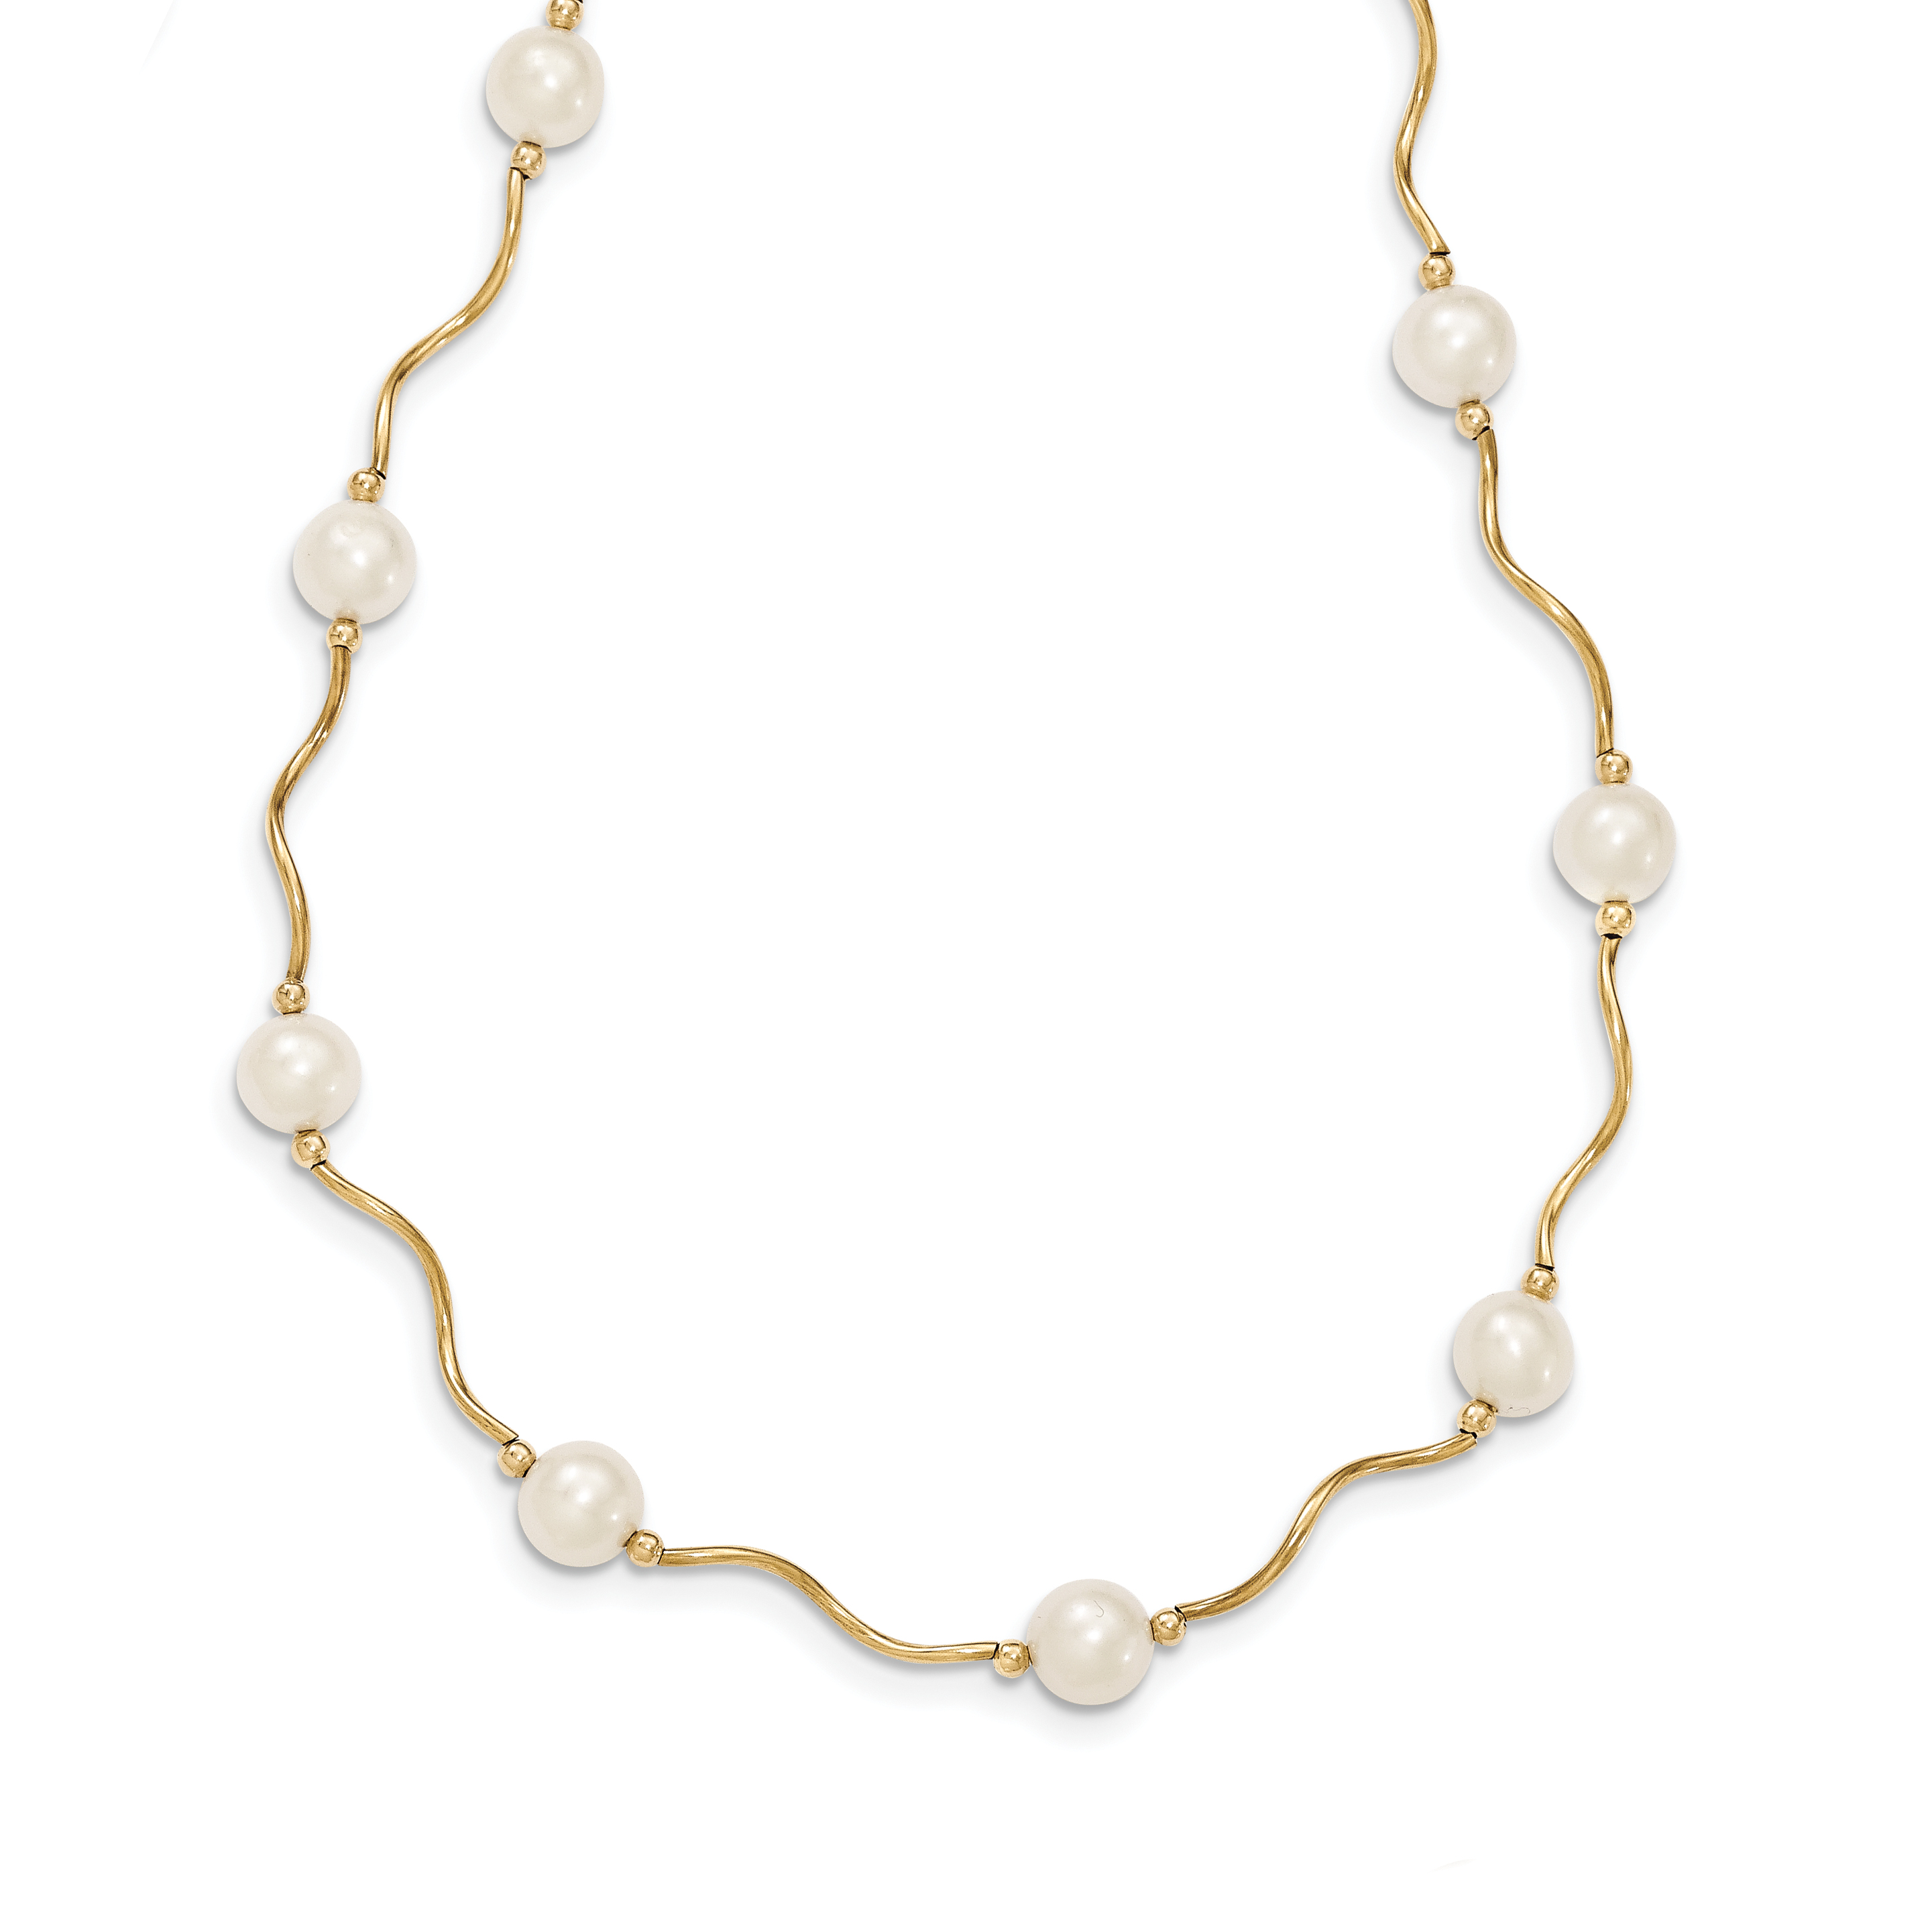 14K Gold Curved Bead and 6-7mm White FW Cultured Pearl Necklace by Saris and Things QG